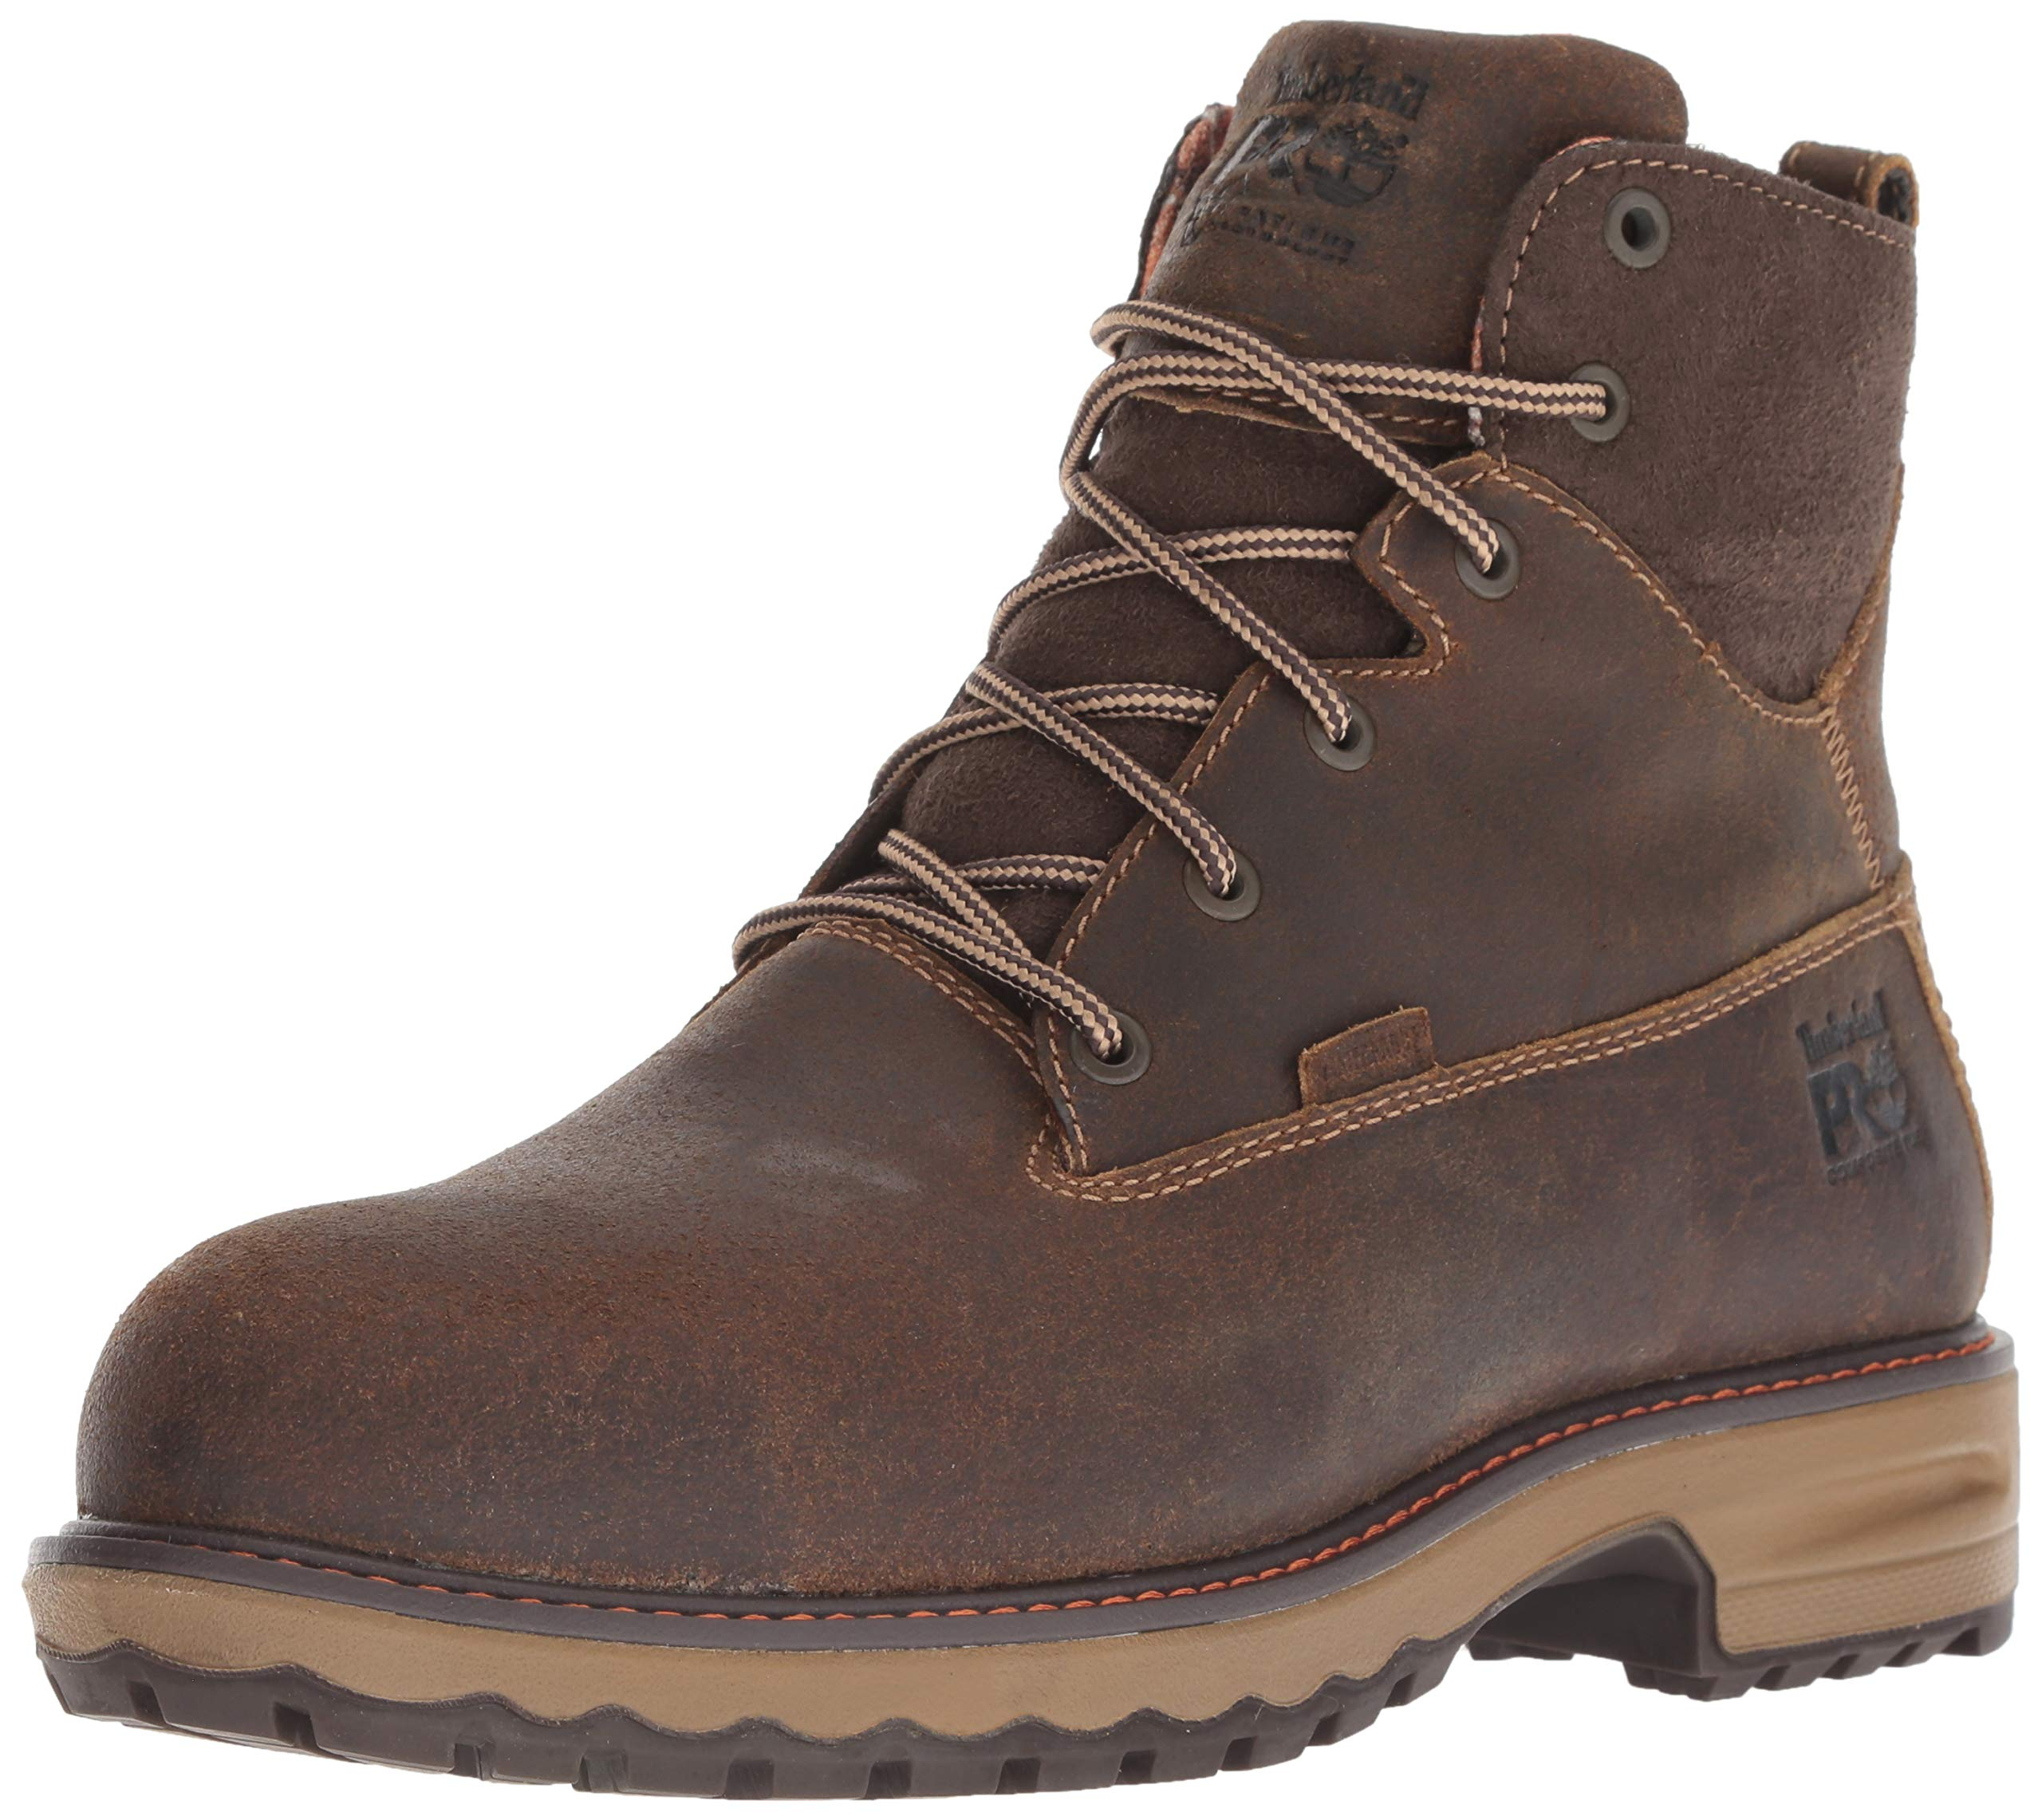 Timberland PRO Women's Hightower 6'' Composite Toe Waterproof Insulated Industrial Boot, Brown Distressed Leather, 6.5 M US by Timberland PRO